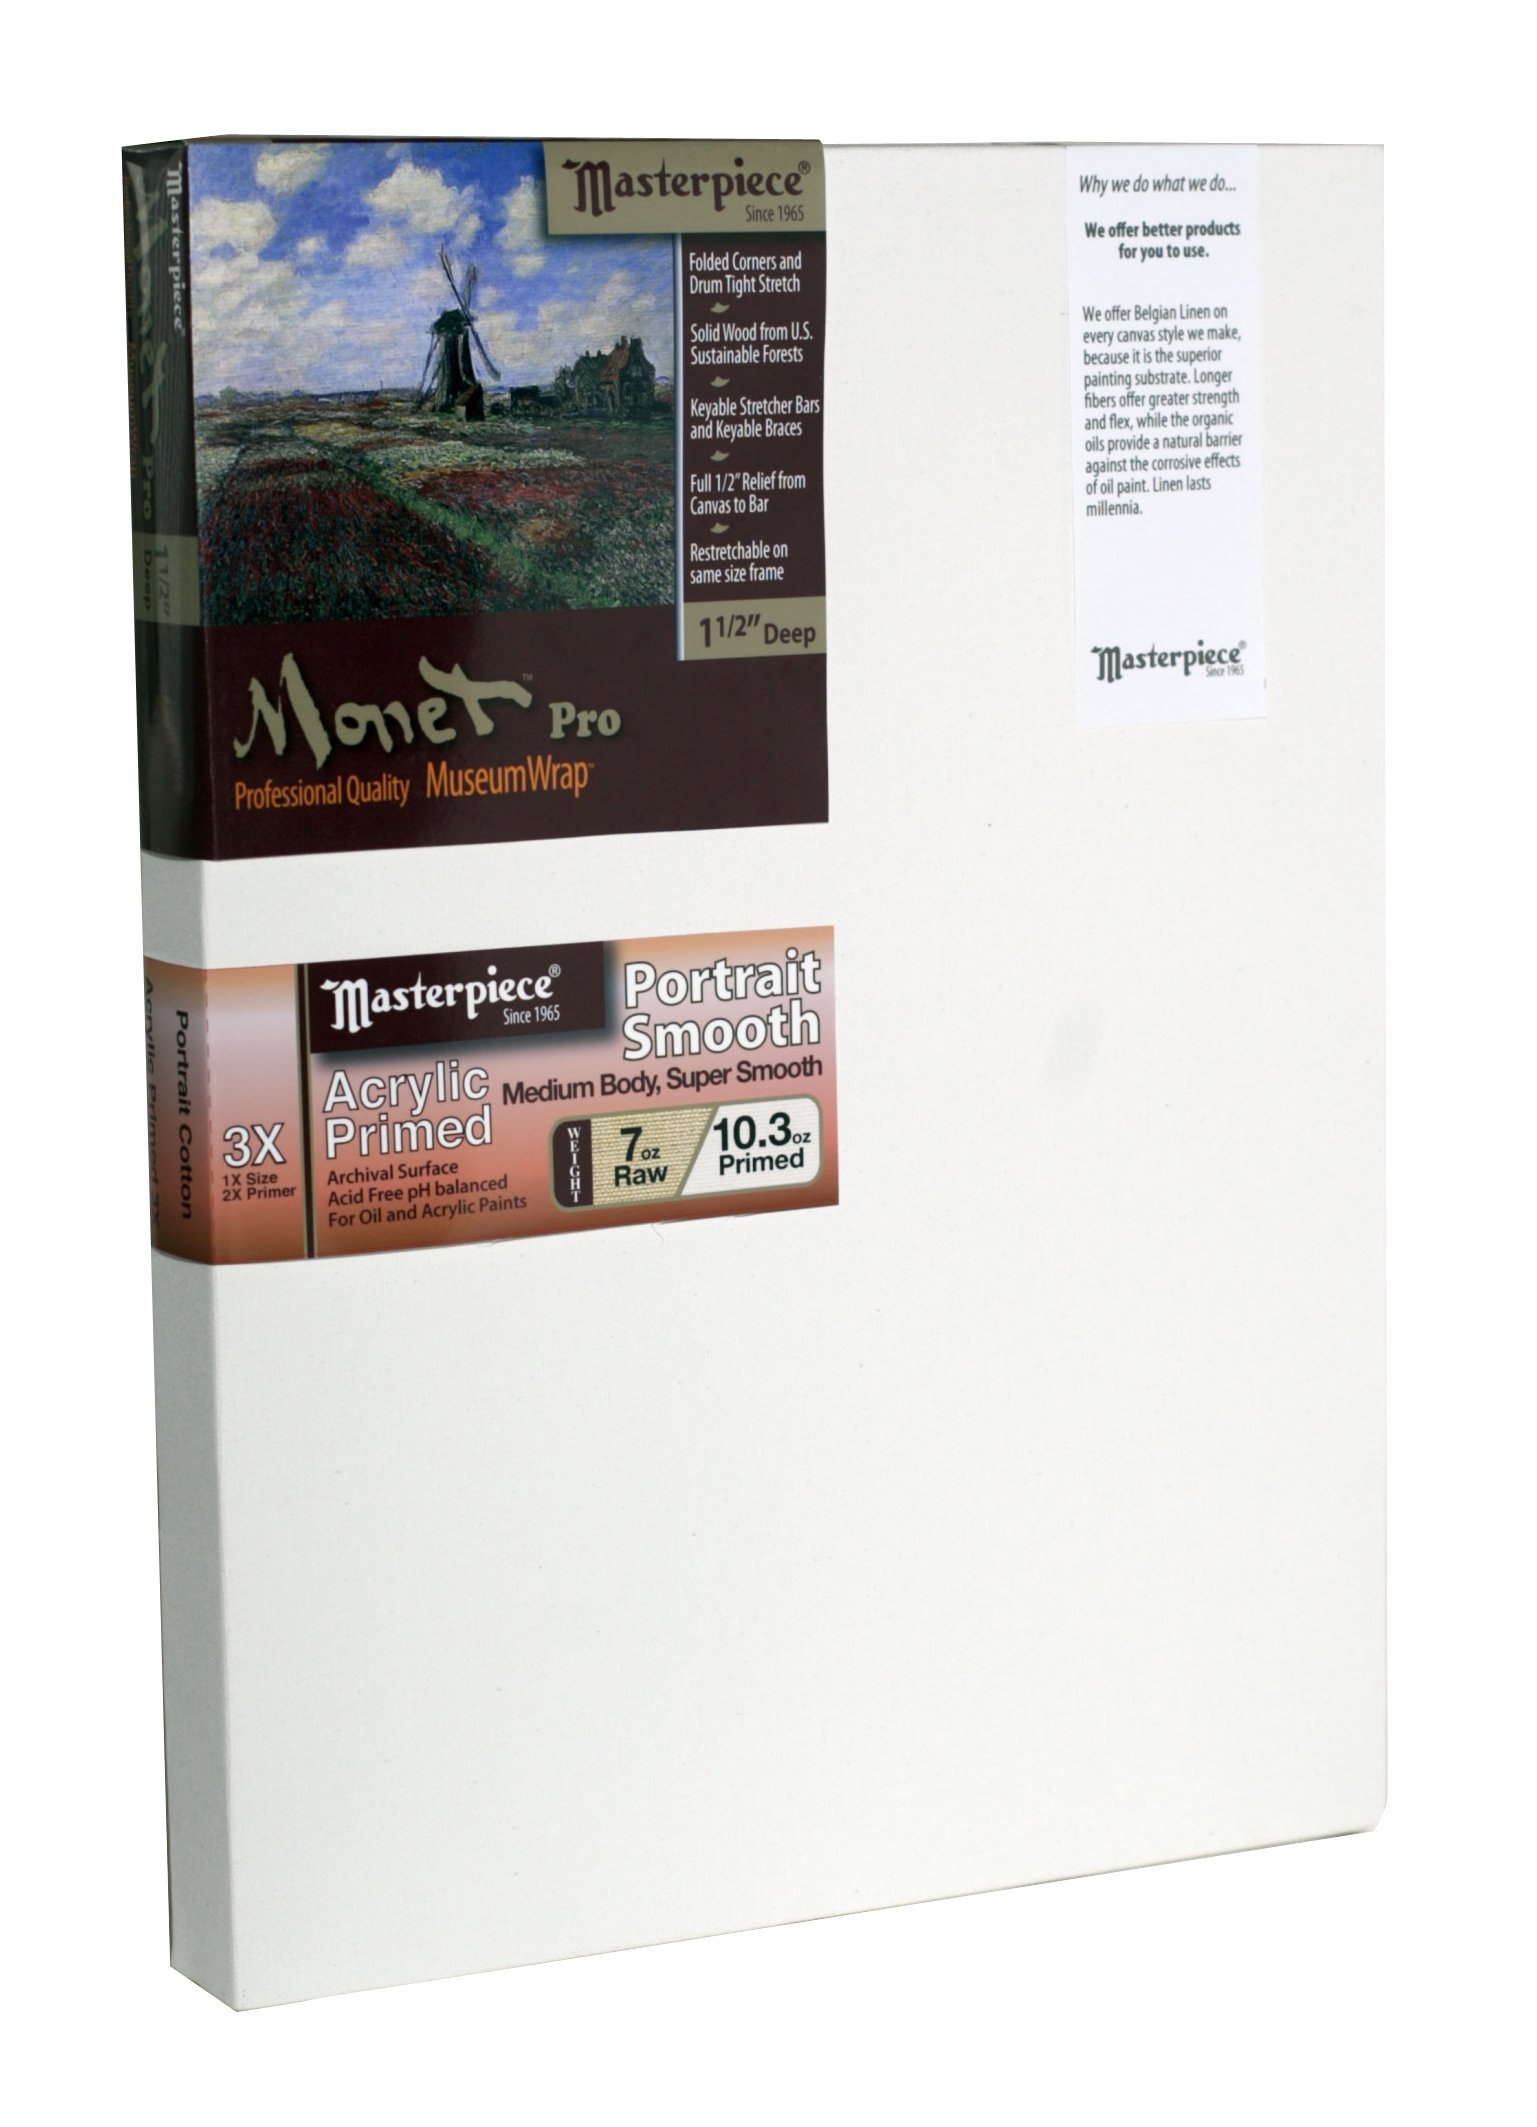 Masterpiece Artist Canvas 43267 Monet PRO 1-1/2'' Deep, 36'' x 36'', Cotton 10.3oz - 3X - Carmel Portrait Smooth by Masterpiece Artist Canvas